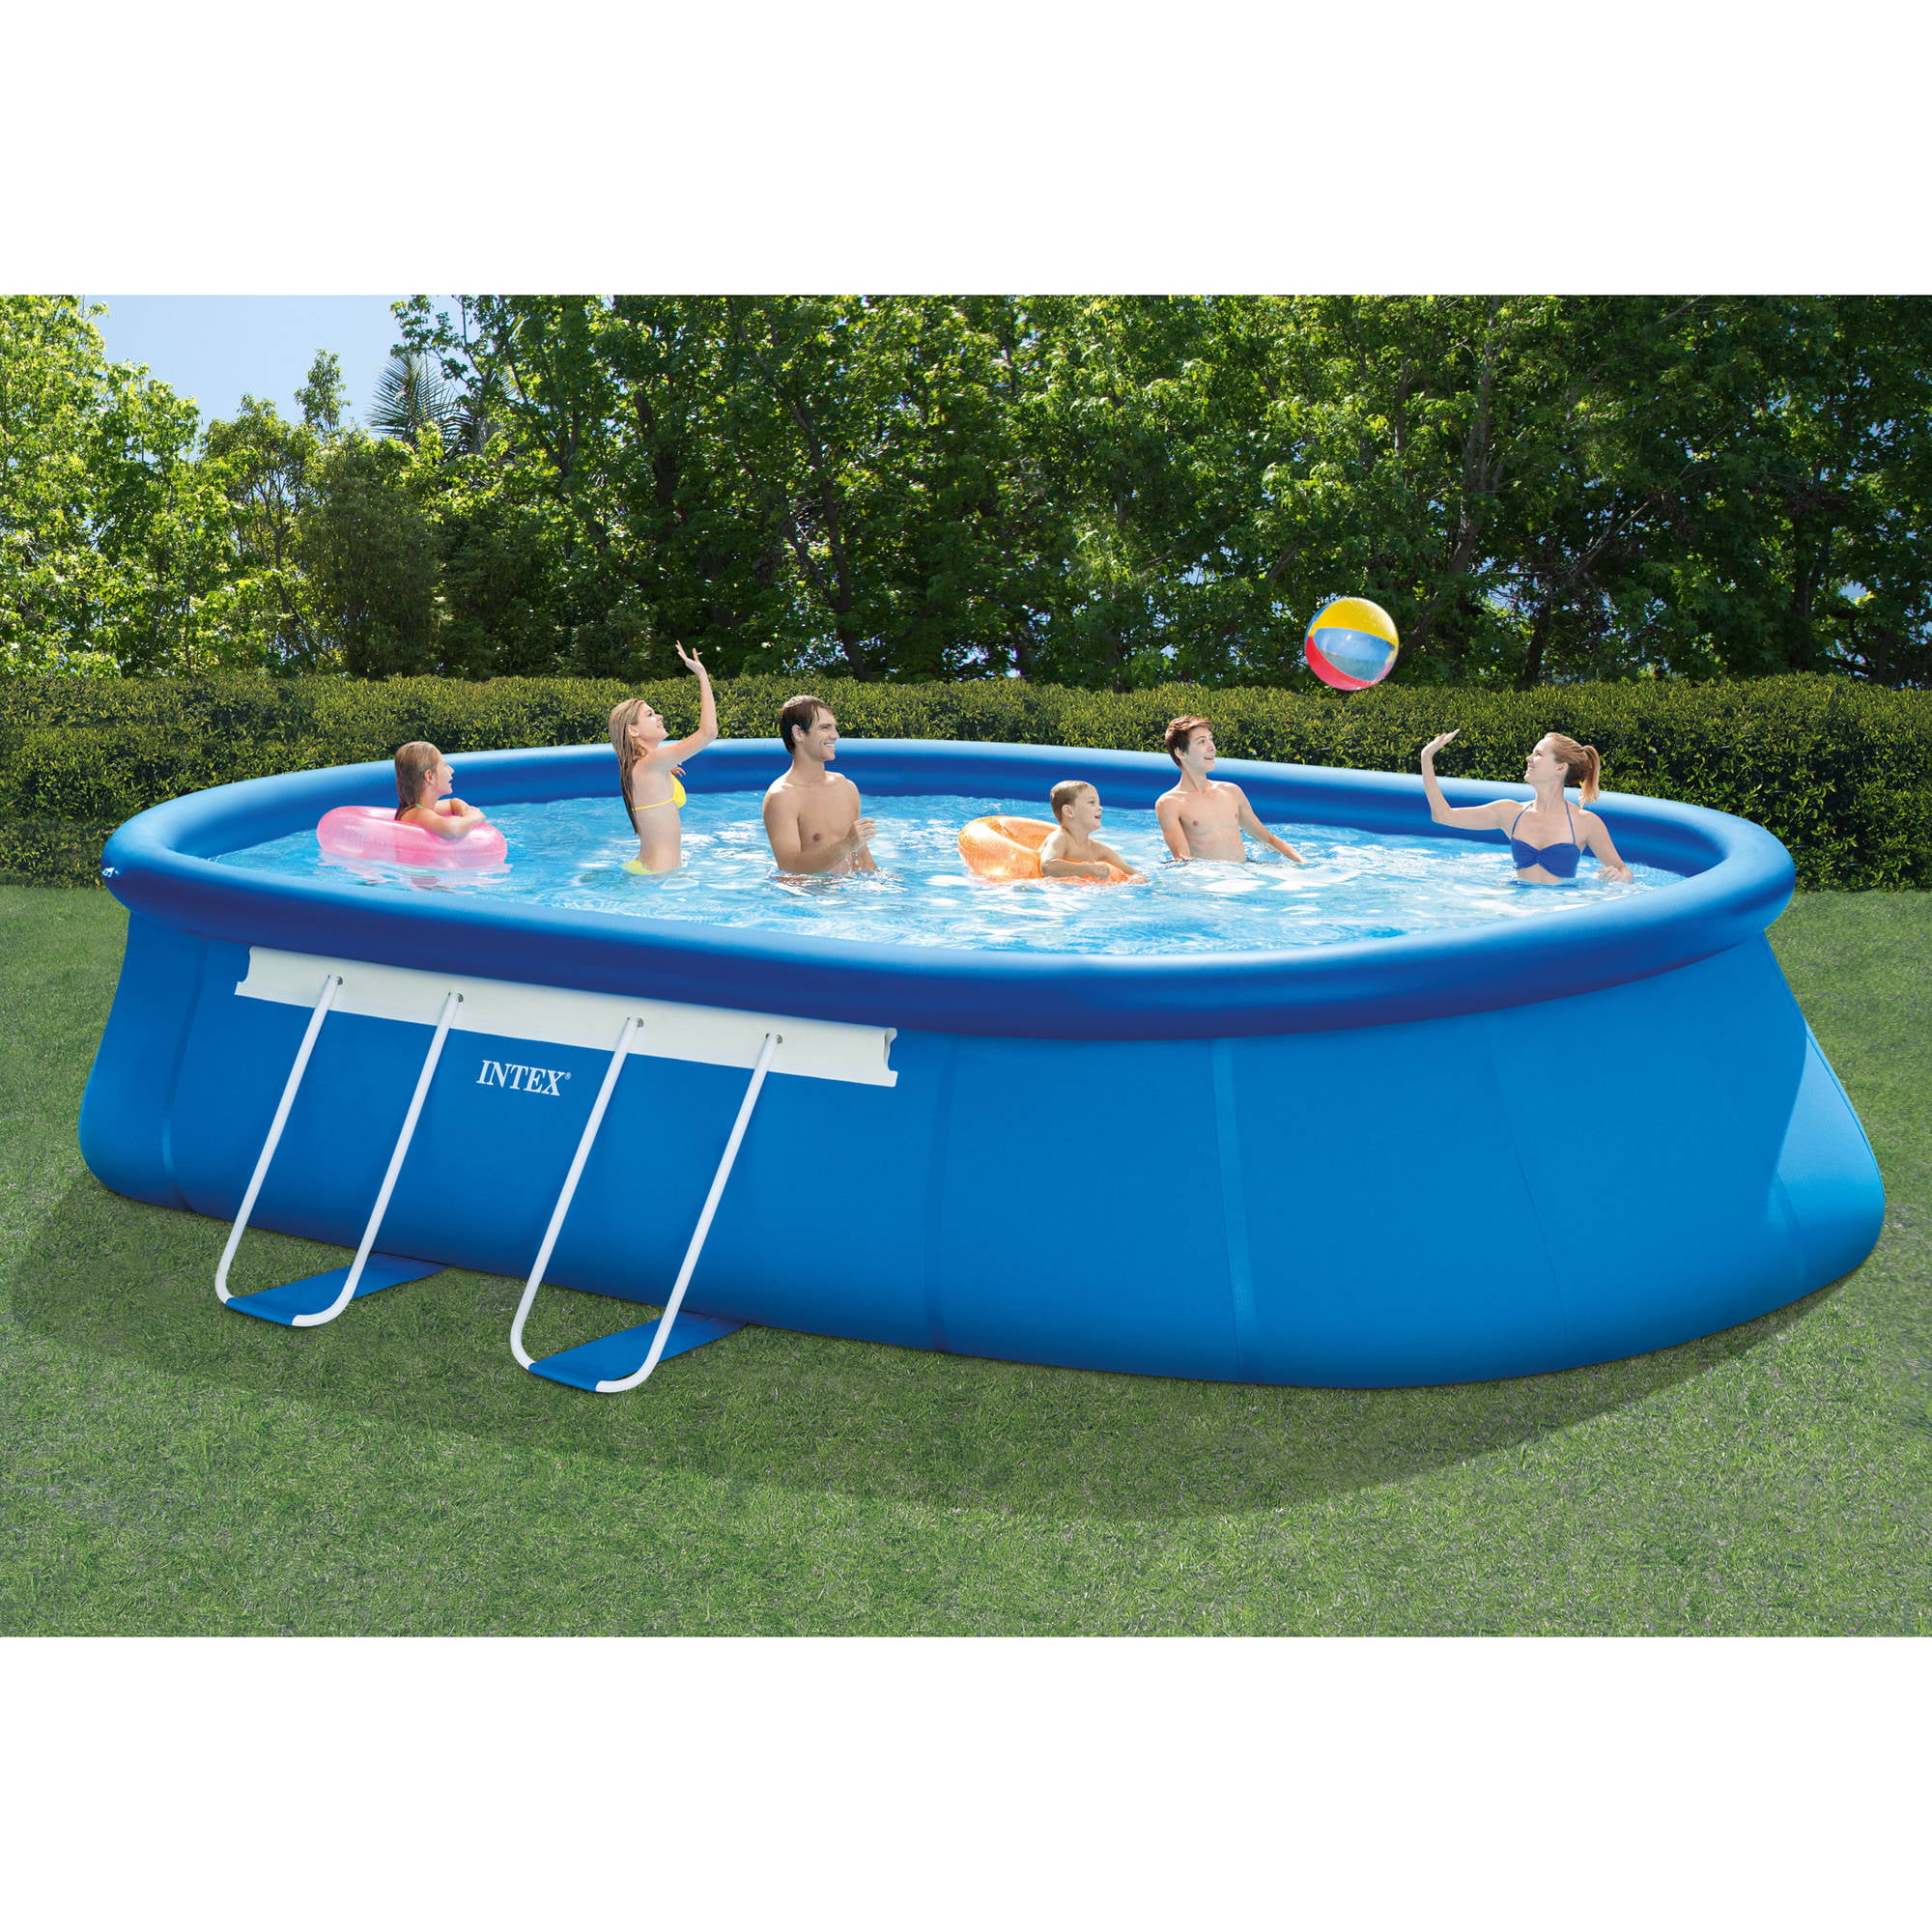 Intex 20 39 X 12 39 X 48 Oval Frame Above Ground Swimming Pool With Filter Pump By Intex At Garden